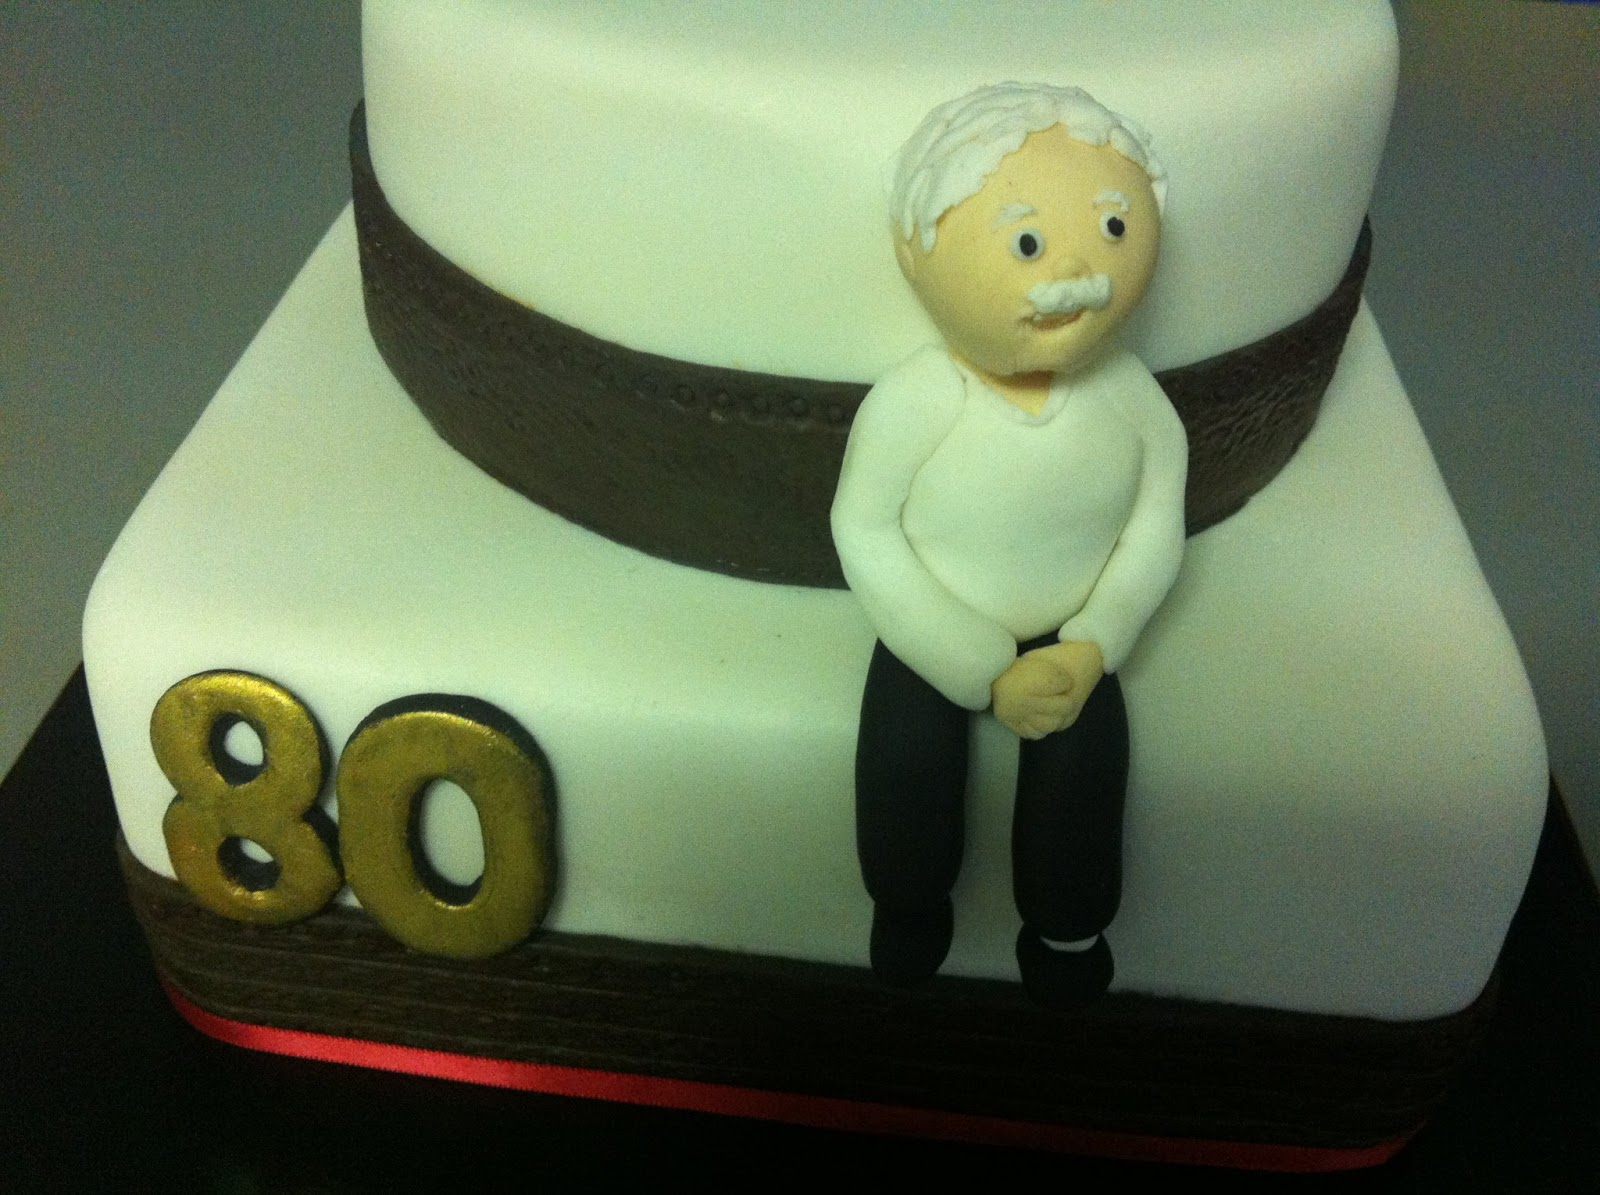 Birthday Cake Images For 80 Year Old Man Dmost